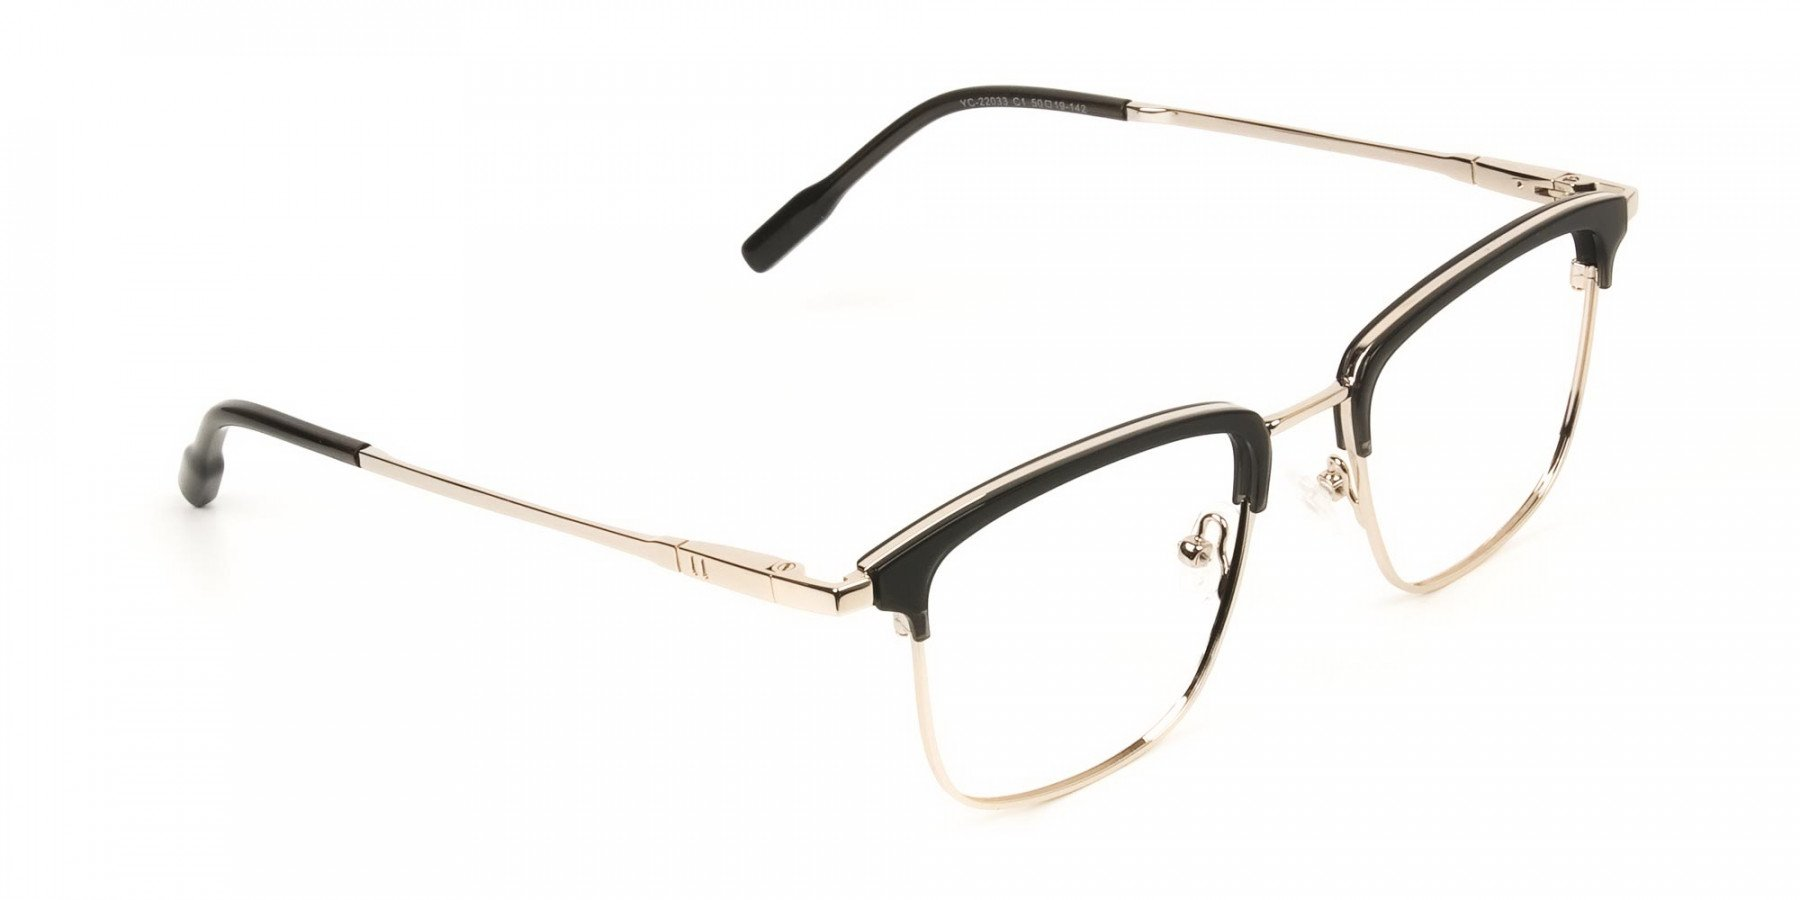 Shining Black and Gold Glasses in Browline Square - 1